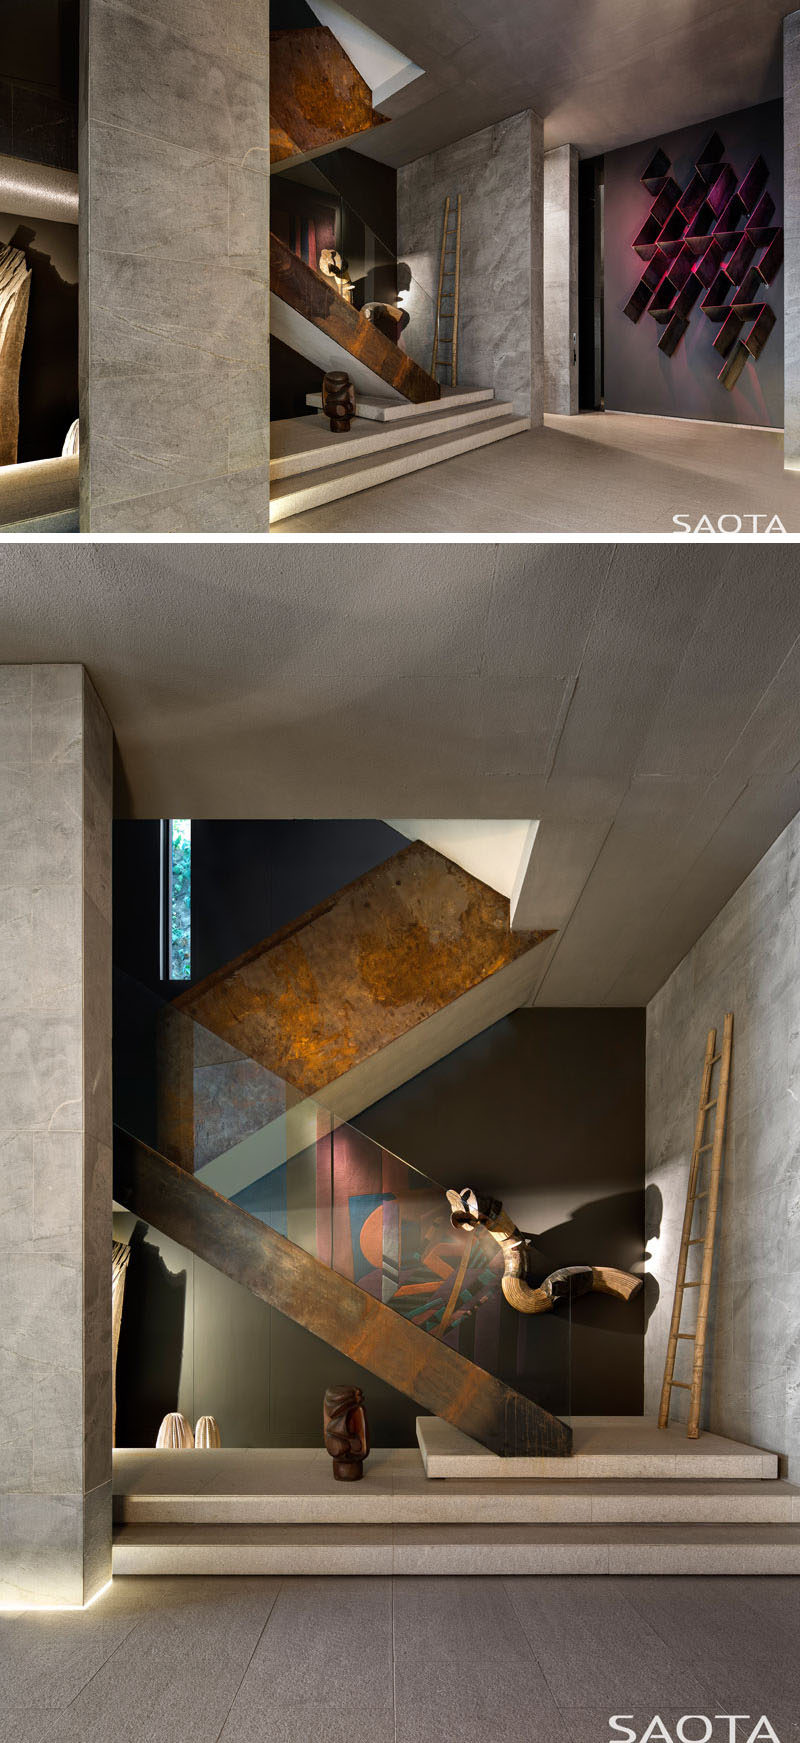 This modern house has a double volume art-filled entrance foyer that has a rusted steel and glass staircase. #EntranceFoyer #ModernInterior #Stairs #RustedSteelAndGlassStairs